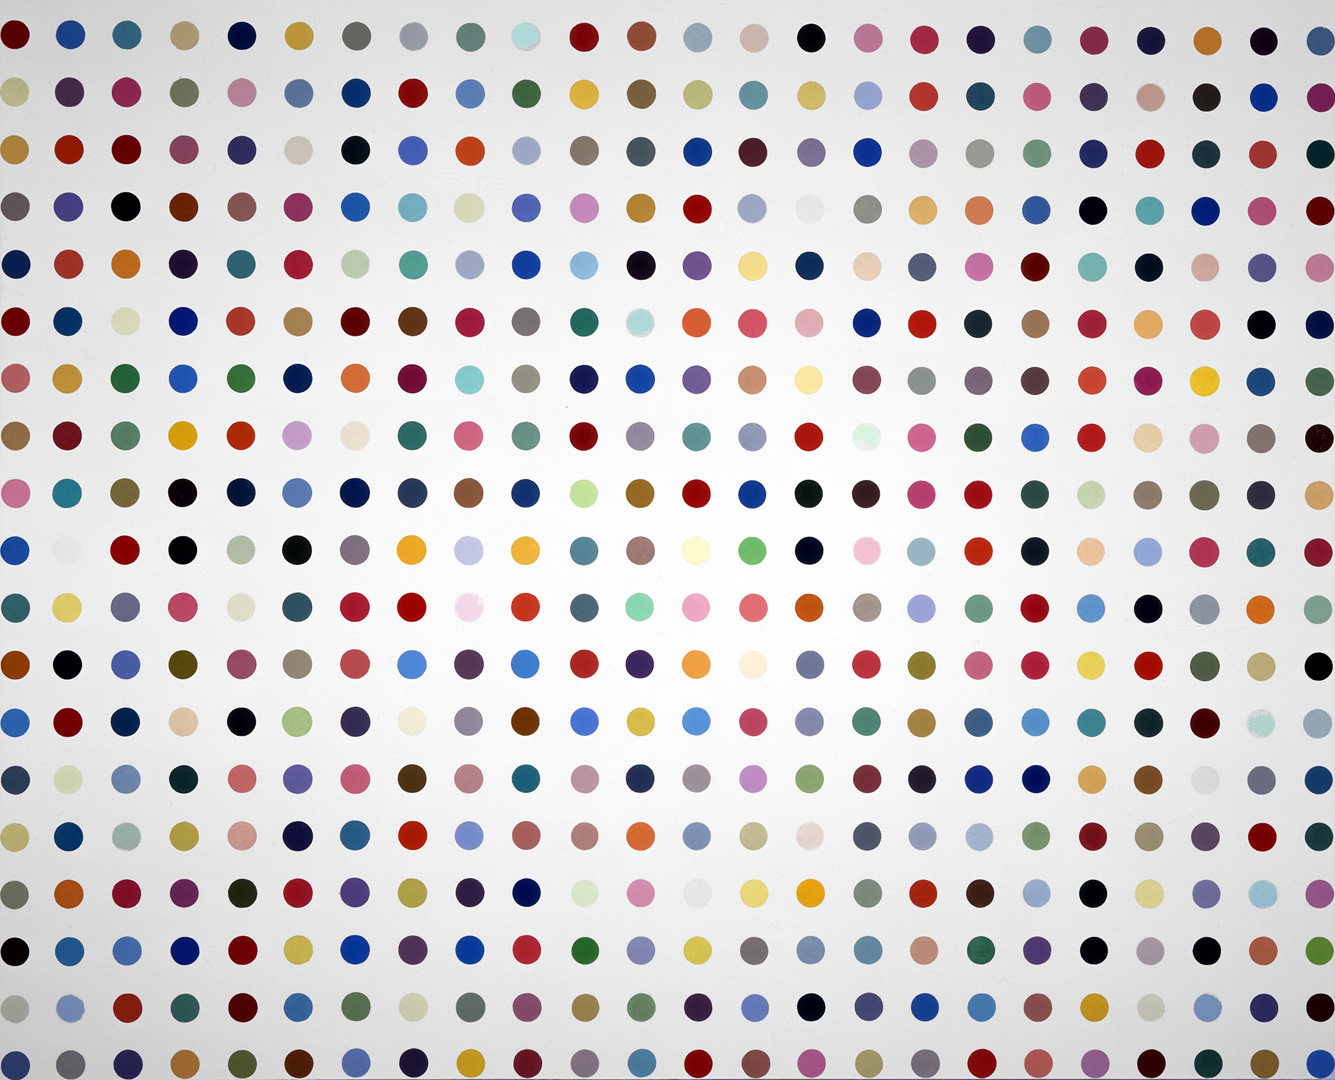 Damien Hirst - Chlorpropamide, 1996, household gloss on canvas